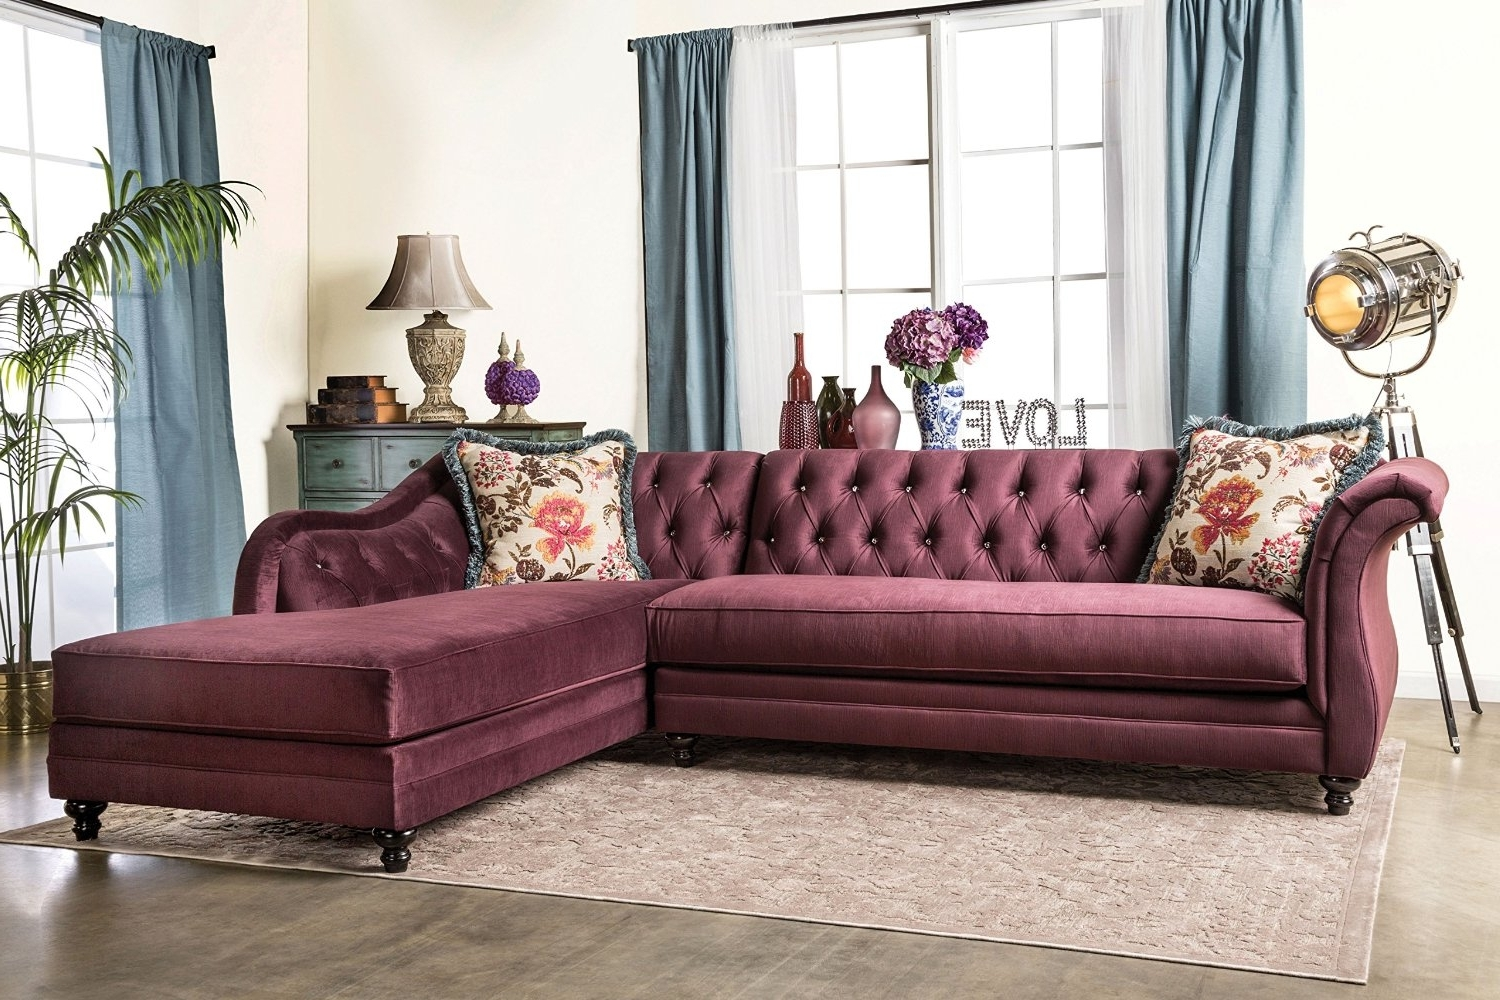 Target Sectional Sofas Pertaining To Most Popular Sofa : Target Tufted Loveseat Tufted Leather Furniture White (View 13 of 20)